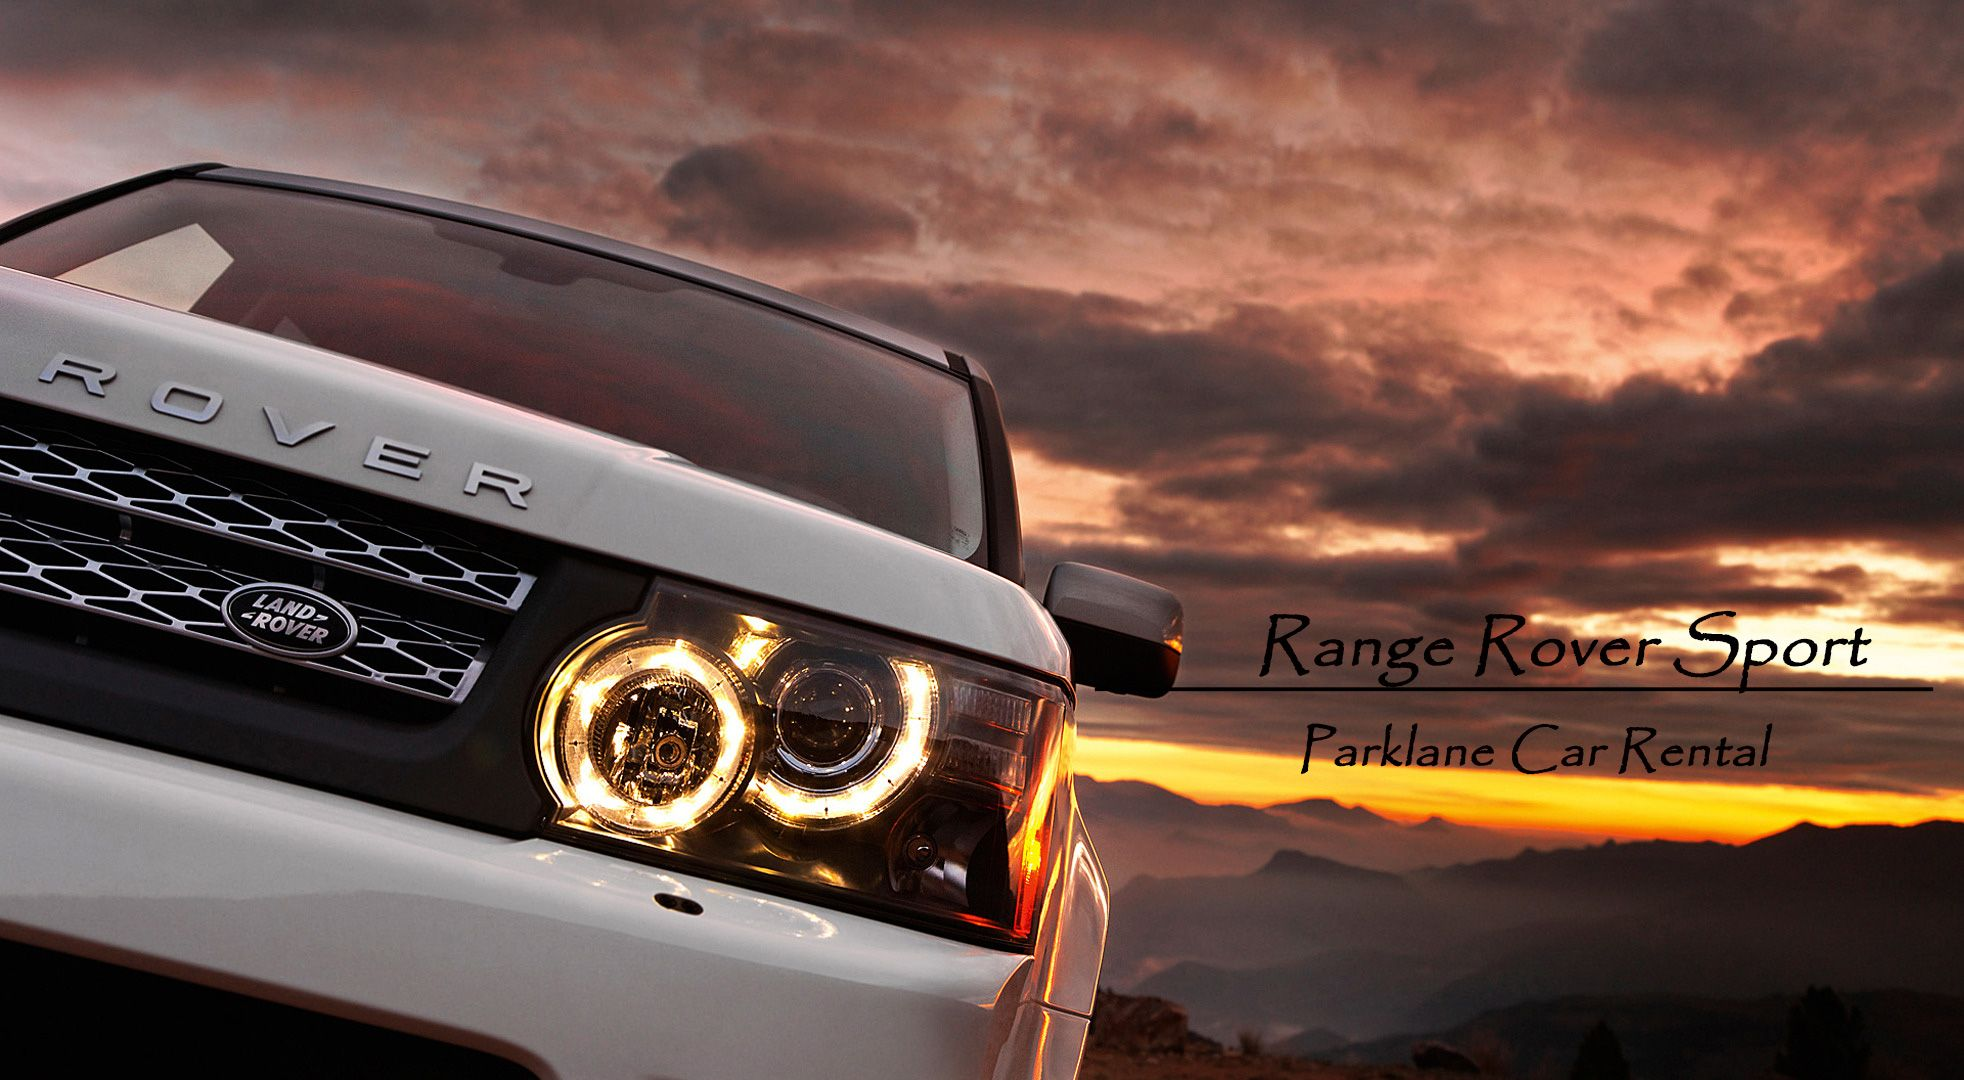 Range Rover Sport Find the Sport in you Rent Range Rover Sport